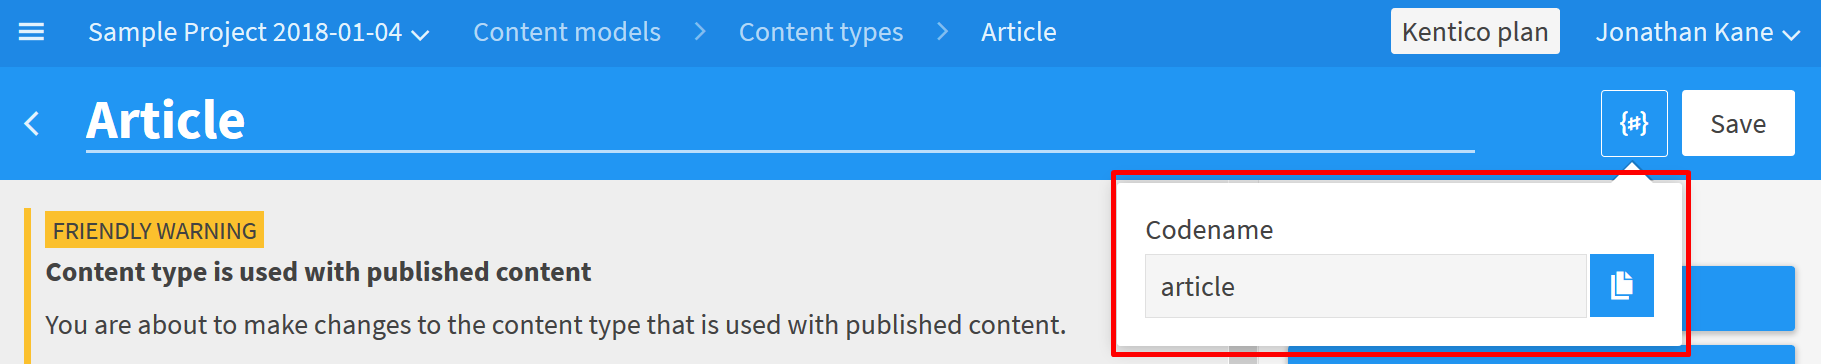 Example: Displaying the codename of the *Article* content type.